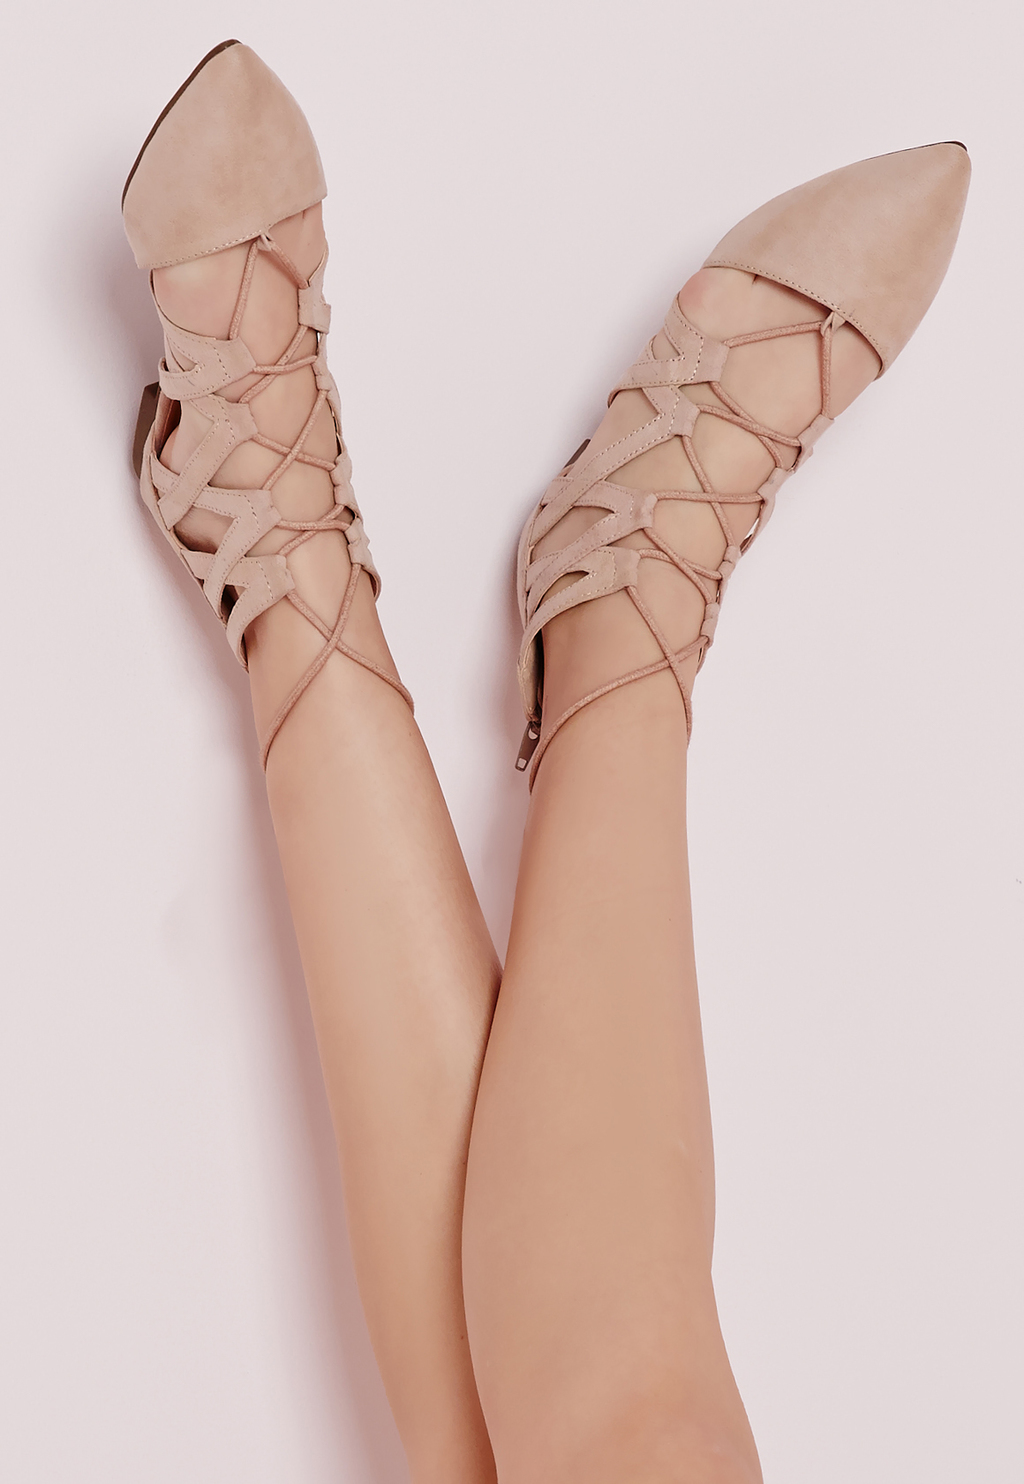 Strappy Lace Up Flat Shoes Nude, Beige - predominant colour: nude; occasions: casual, creative work; heel height: flat; ankle detail: ankle tie; toe: pointed toe; style: ballerinas / pumps; finish: plain; pattern: plain; material: faux suede; season: s/s 2016; wardrobe: basic